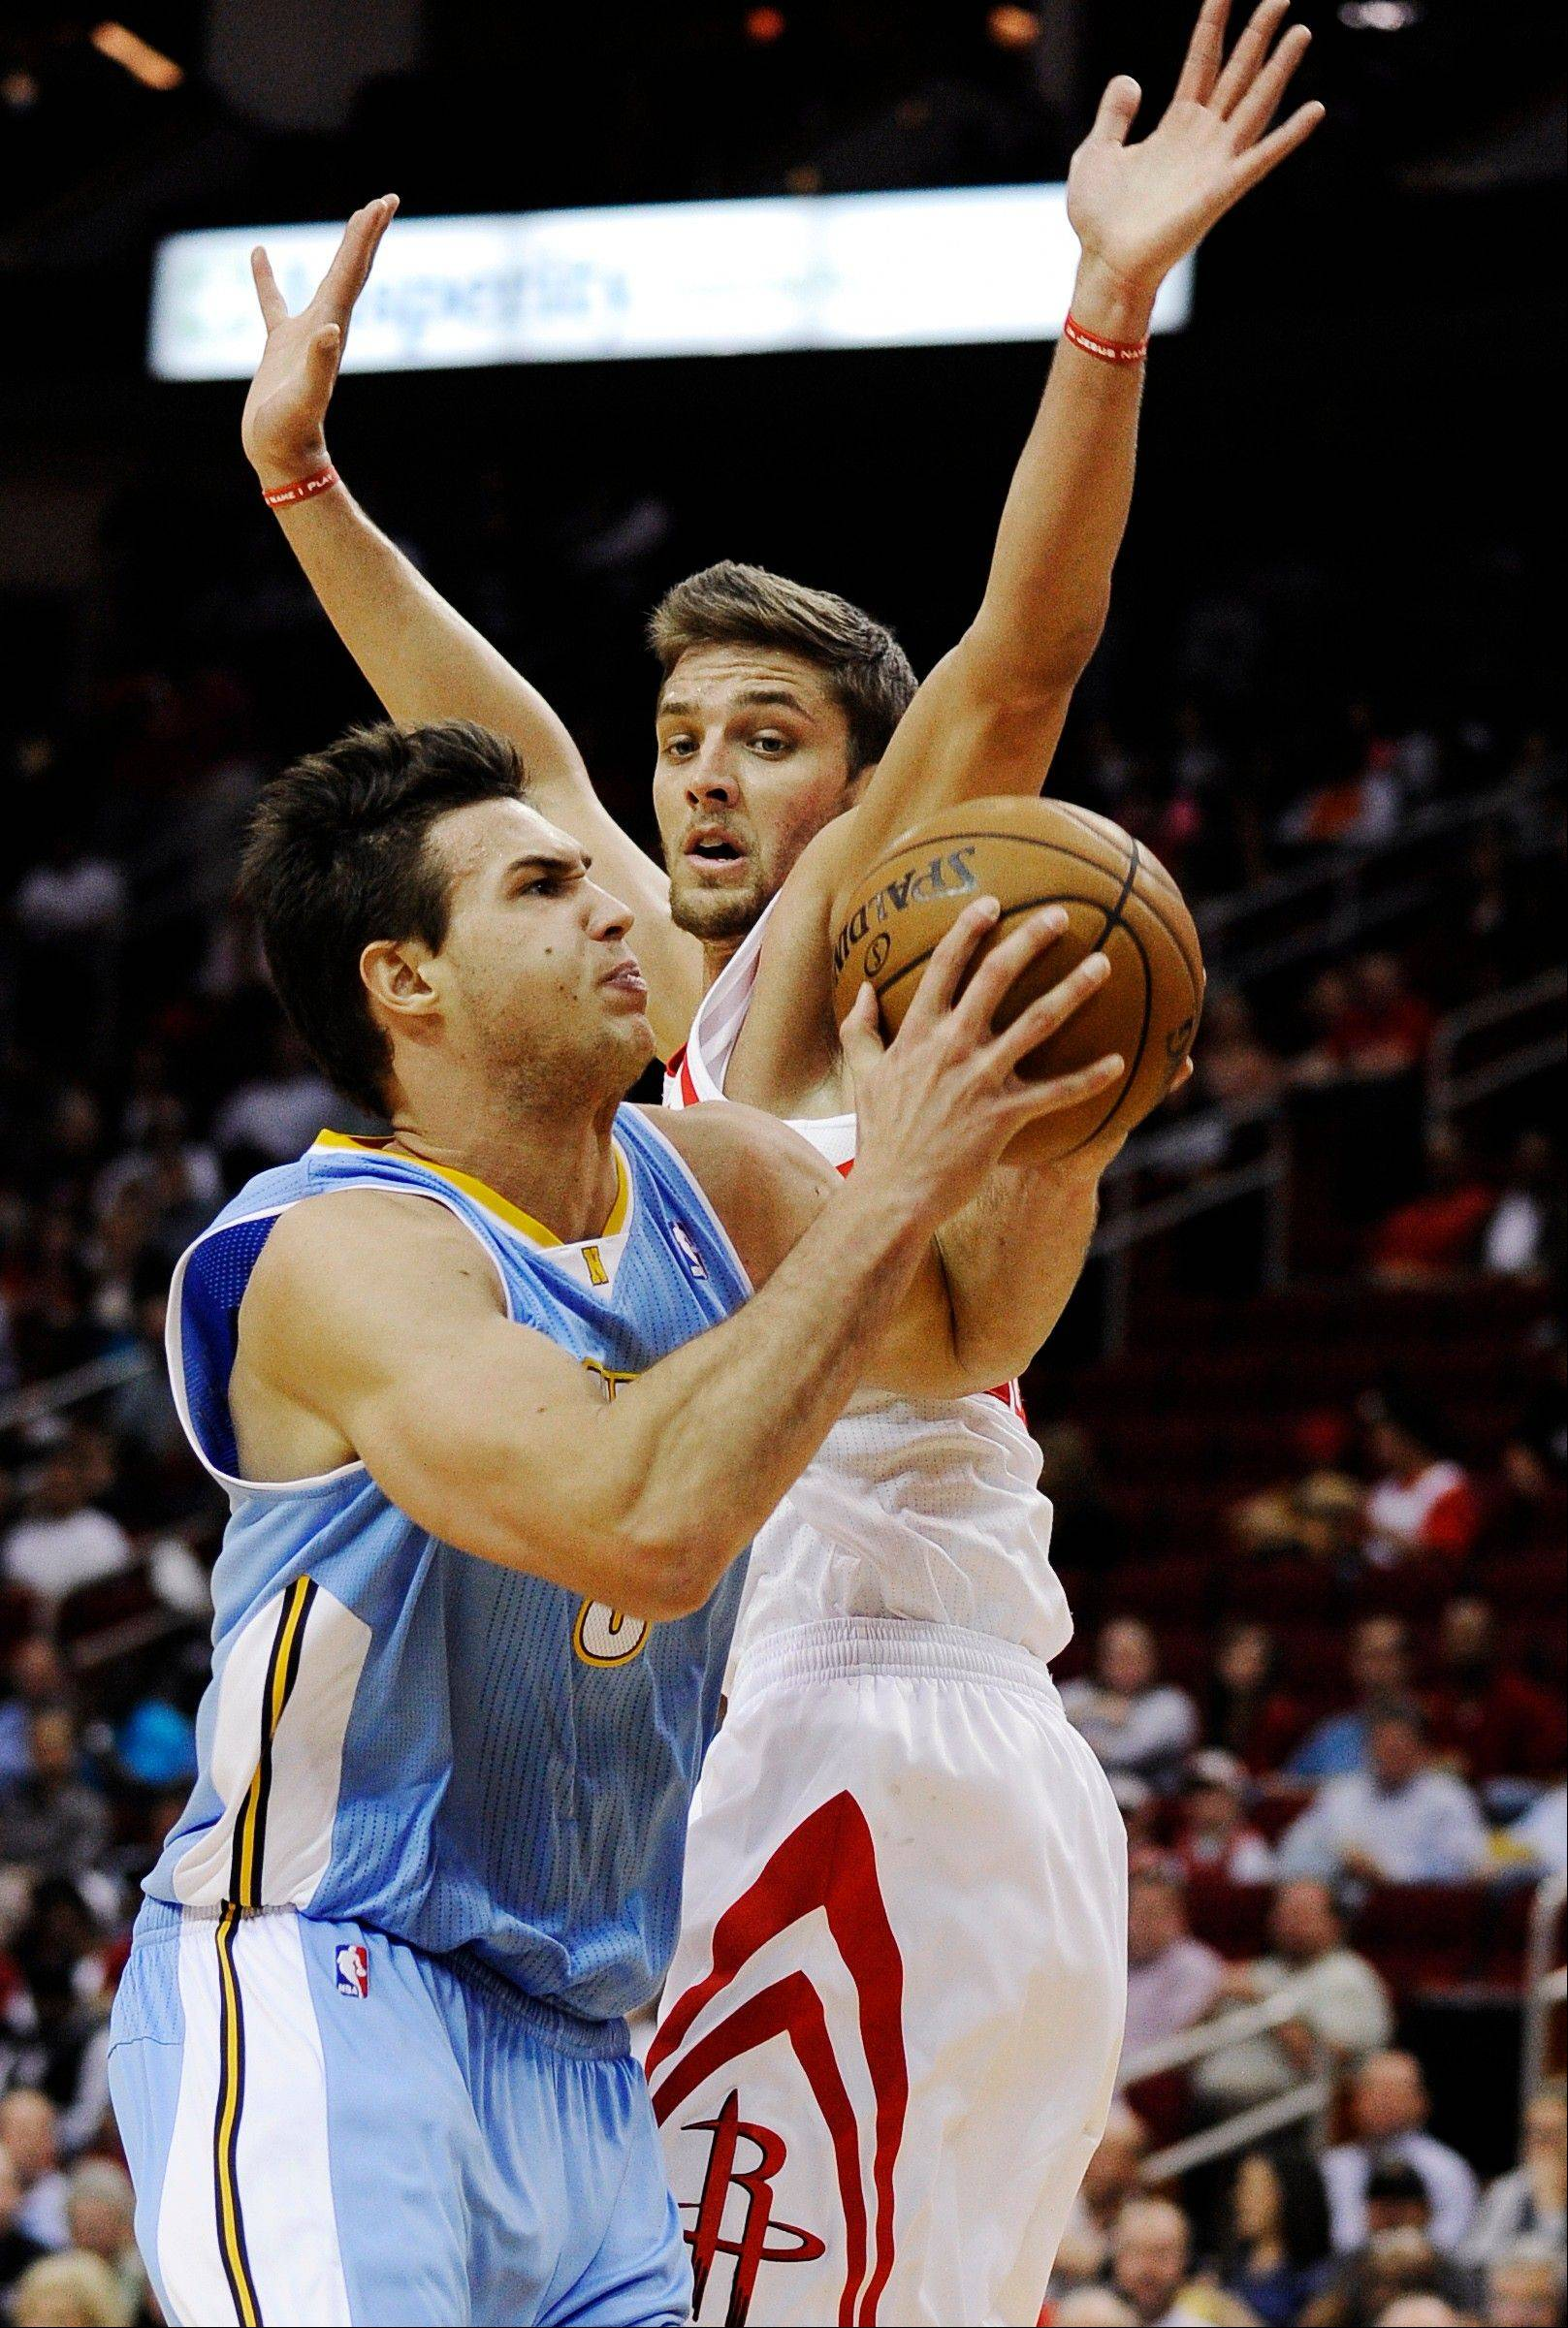 The Denver Nuggets� Danilo Gallinari, left, drives to the basket against Houston Rockets� Chandler Parsons Wednesday during the first half in Houston.